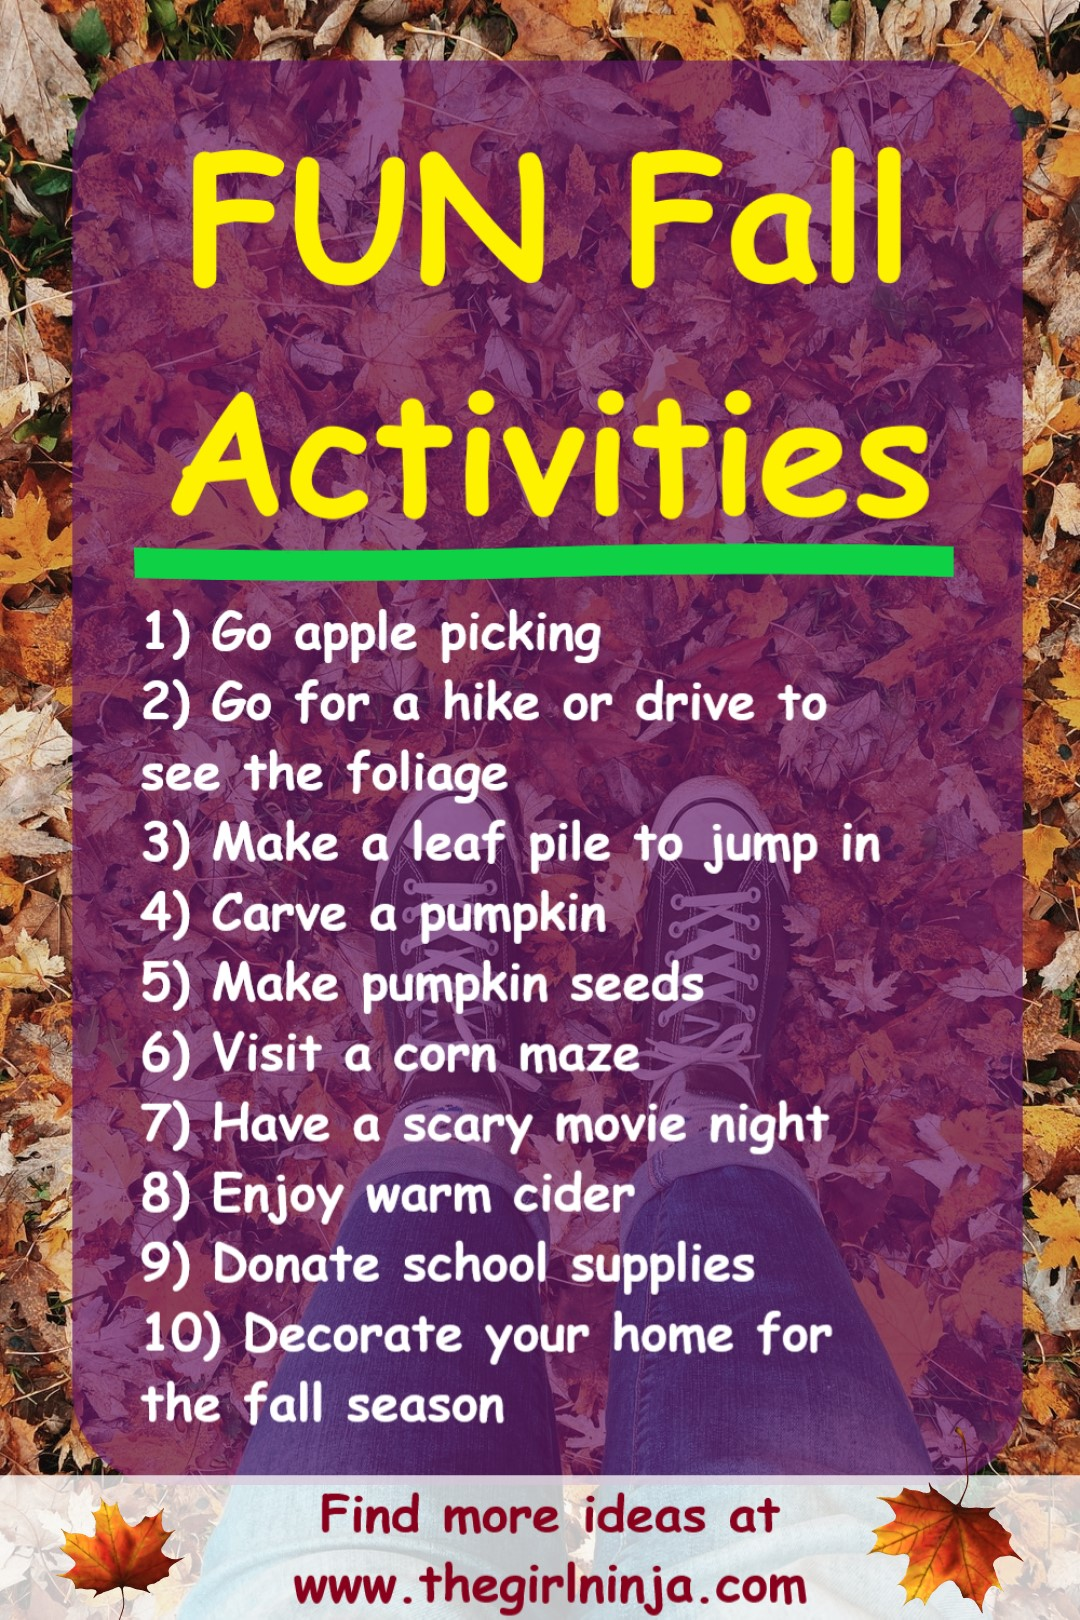 Brown, orange, yellow, and tan leaves scattered over green grass with two feet in black and white converse sneakers and legs in blue jeans. Over leaves, shows, and legs a translucent purple rectangle has yellow text that reads FUN Fall Activities and then a bright green line underneath activities. Below green line white text reads a numbered list of activities like Go apple picking and donate school supplies. A translucent white rectangle goes across the bottom with a leaf on the outer edges and maroon text in the center that reads Find more ideas at www.thegirlninja.com